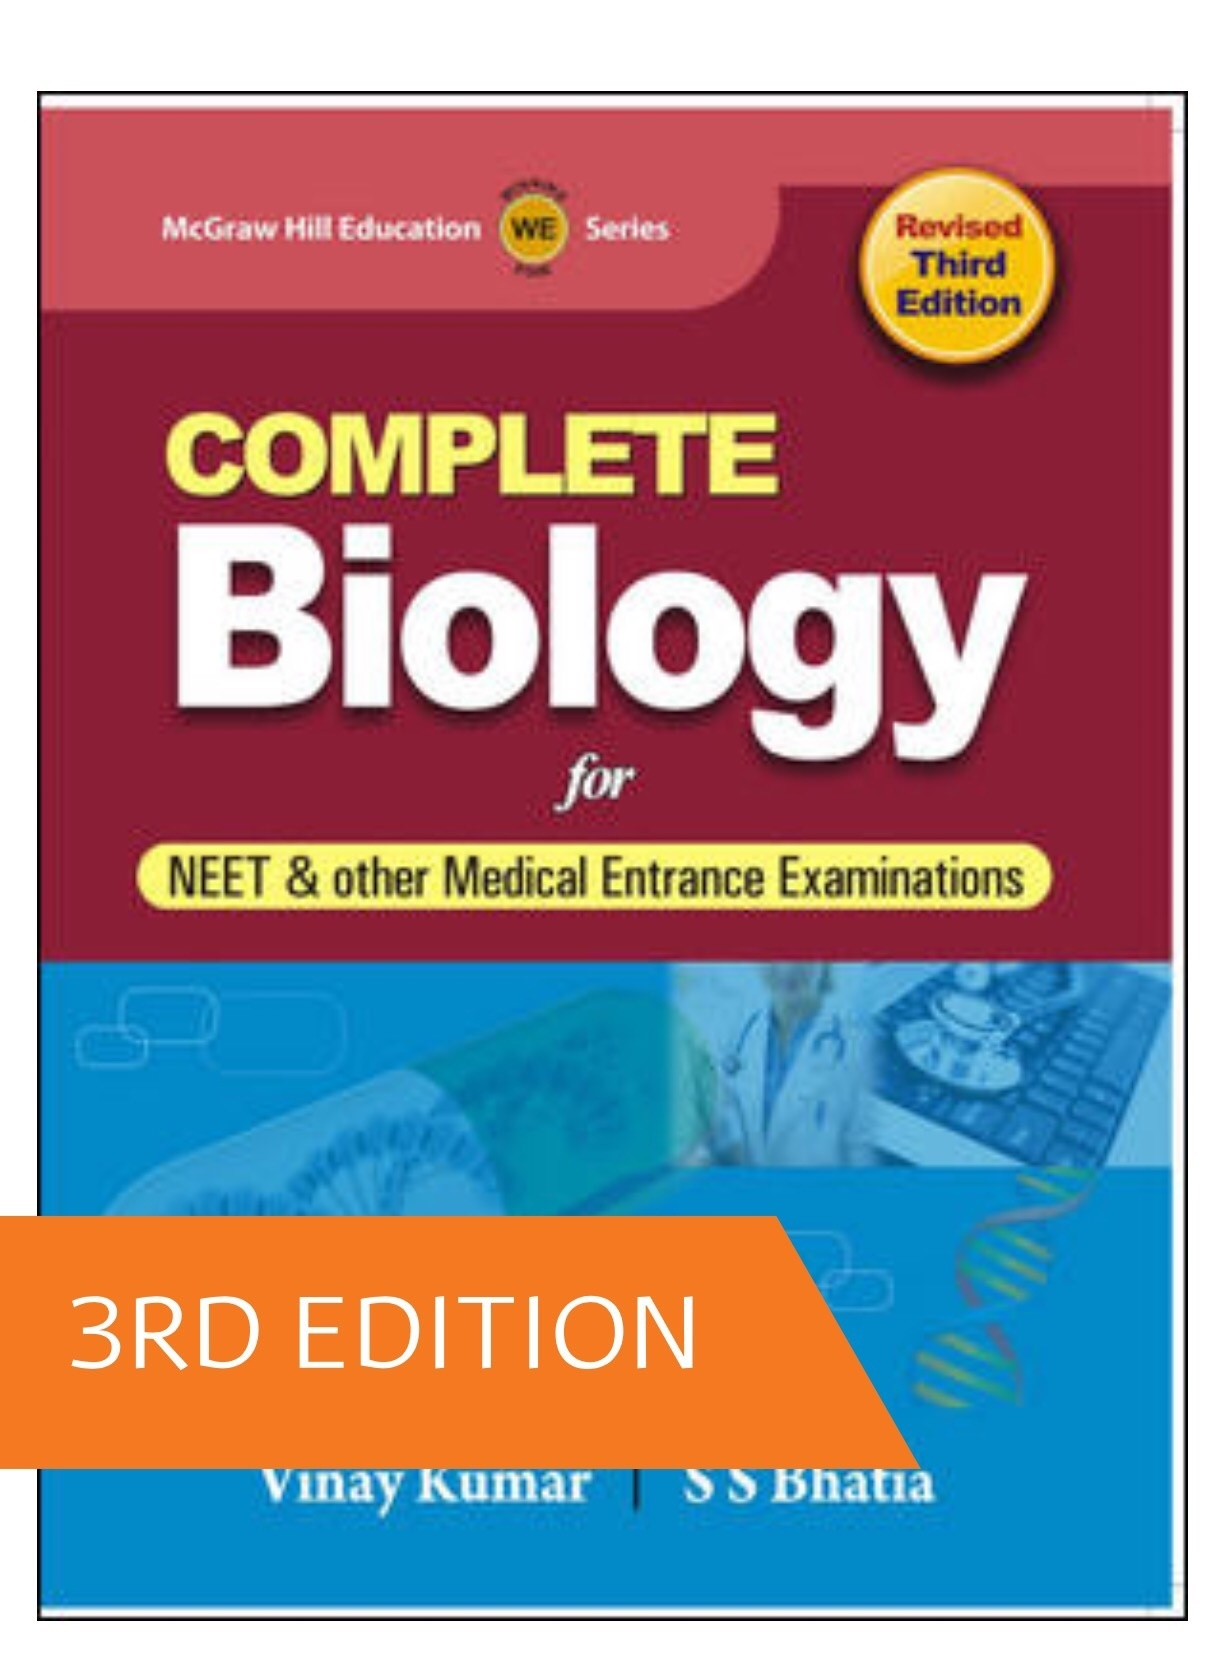 How was your strategy for biology which helped you to score